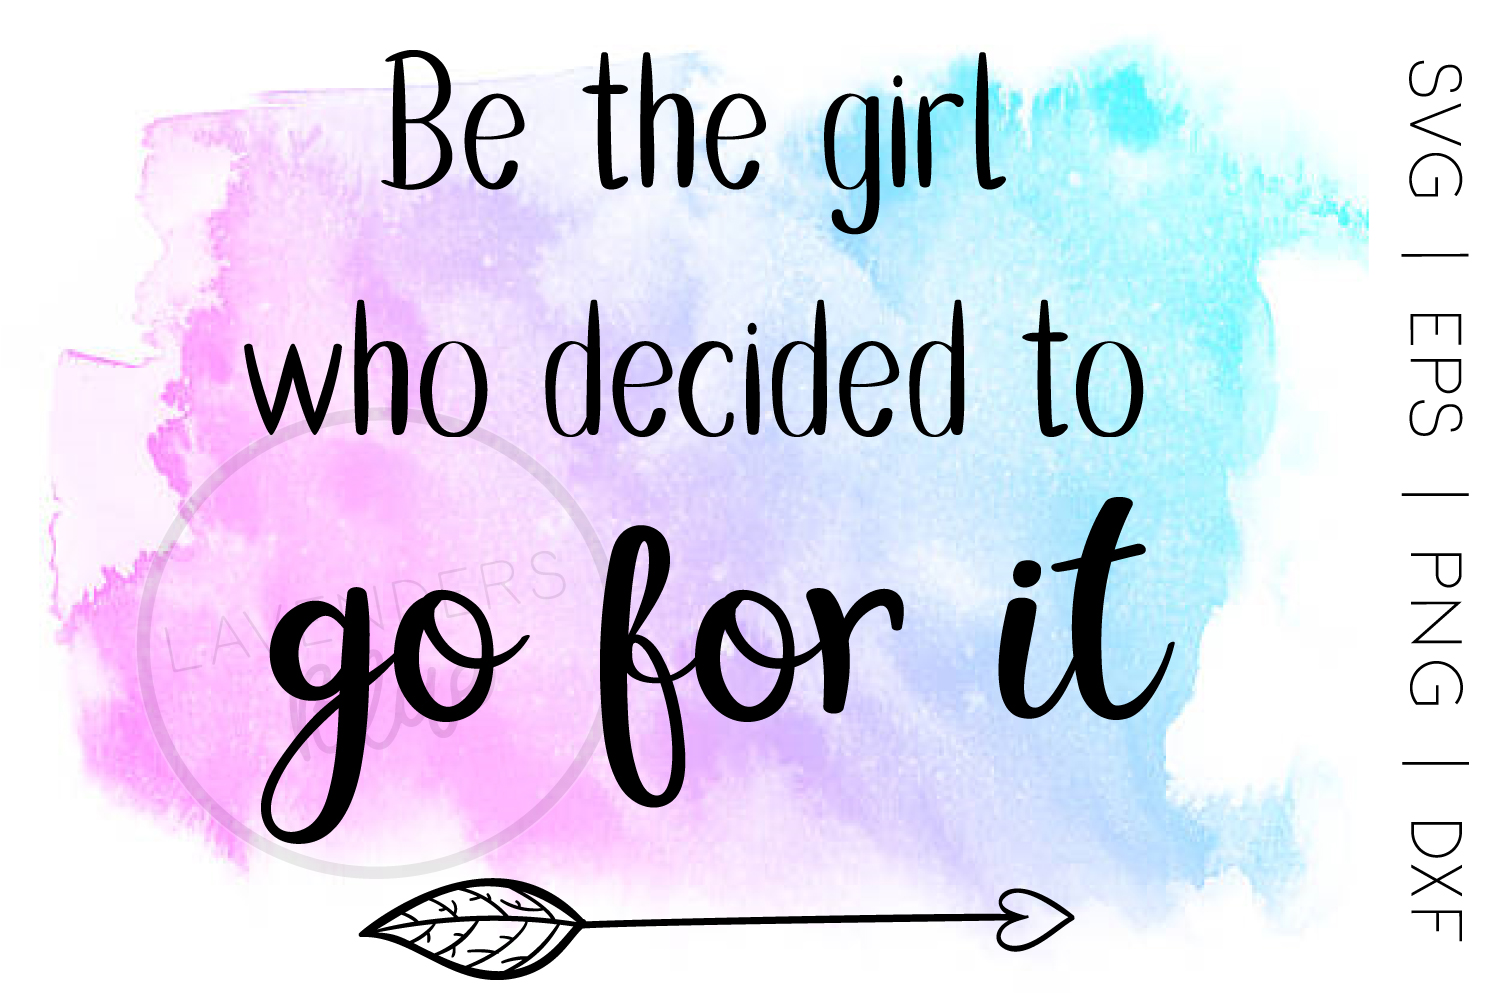 SVG File, Quote, Be the girl who decided to go or it example image 1